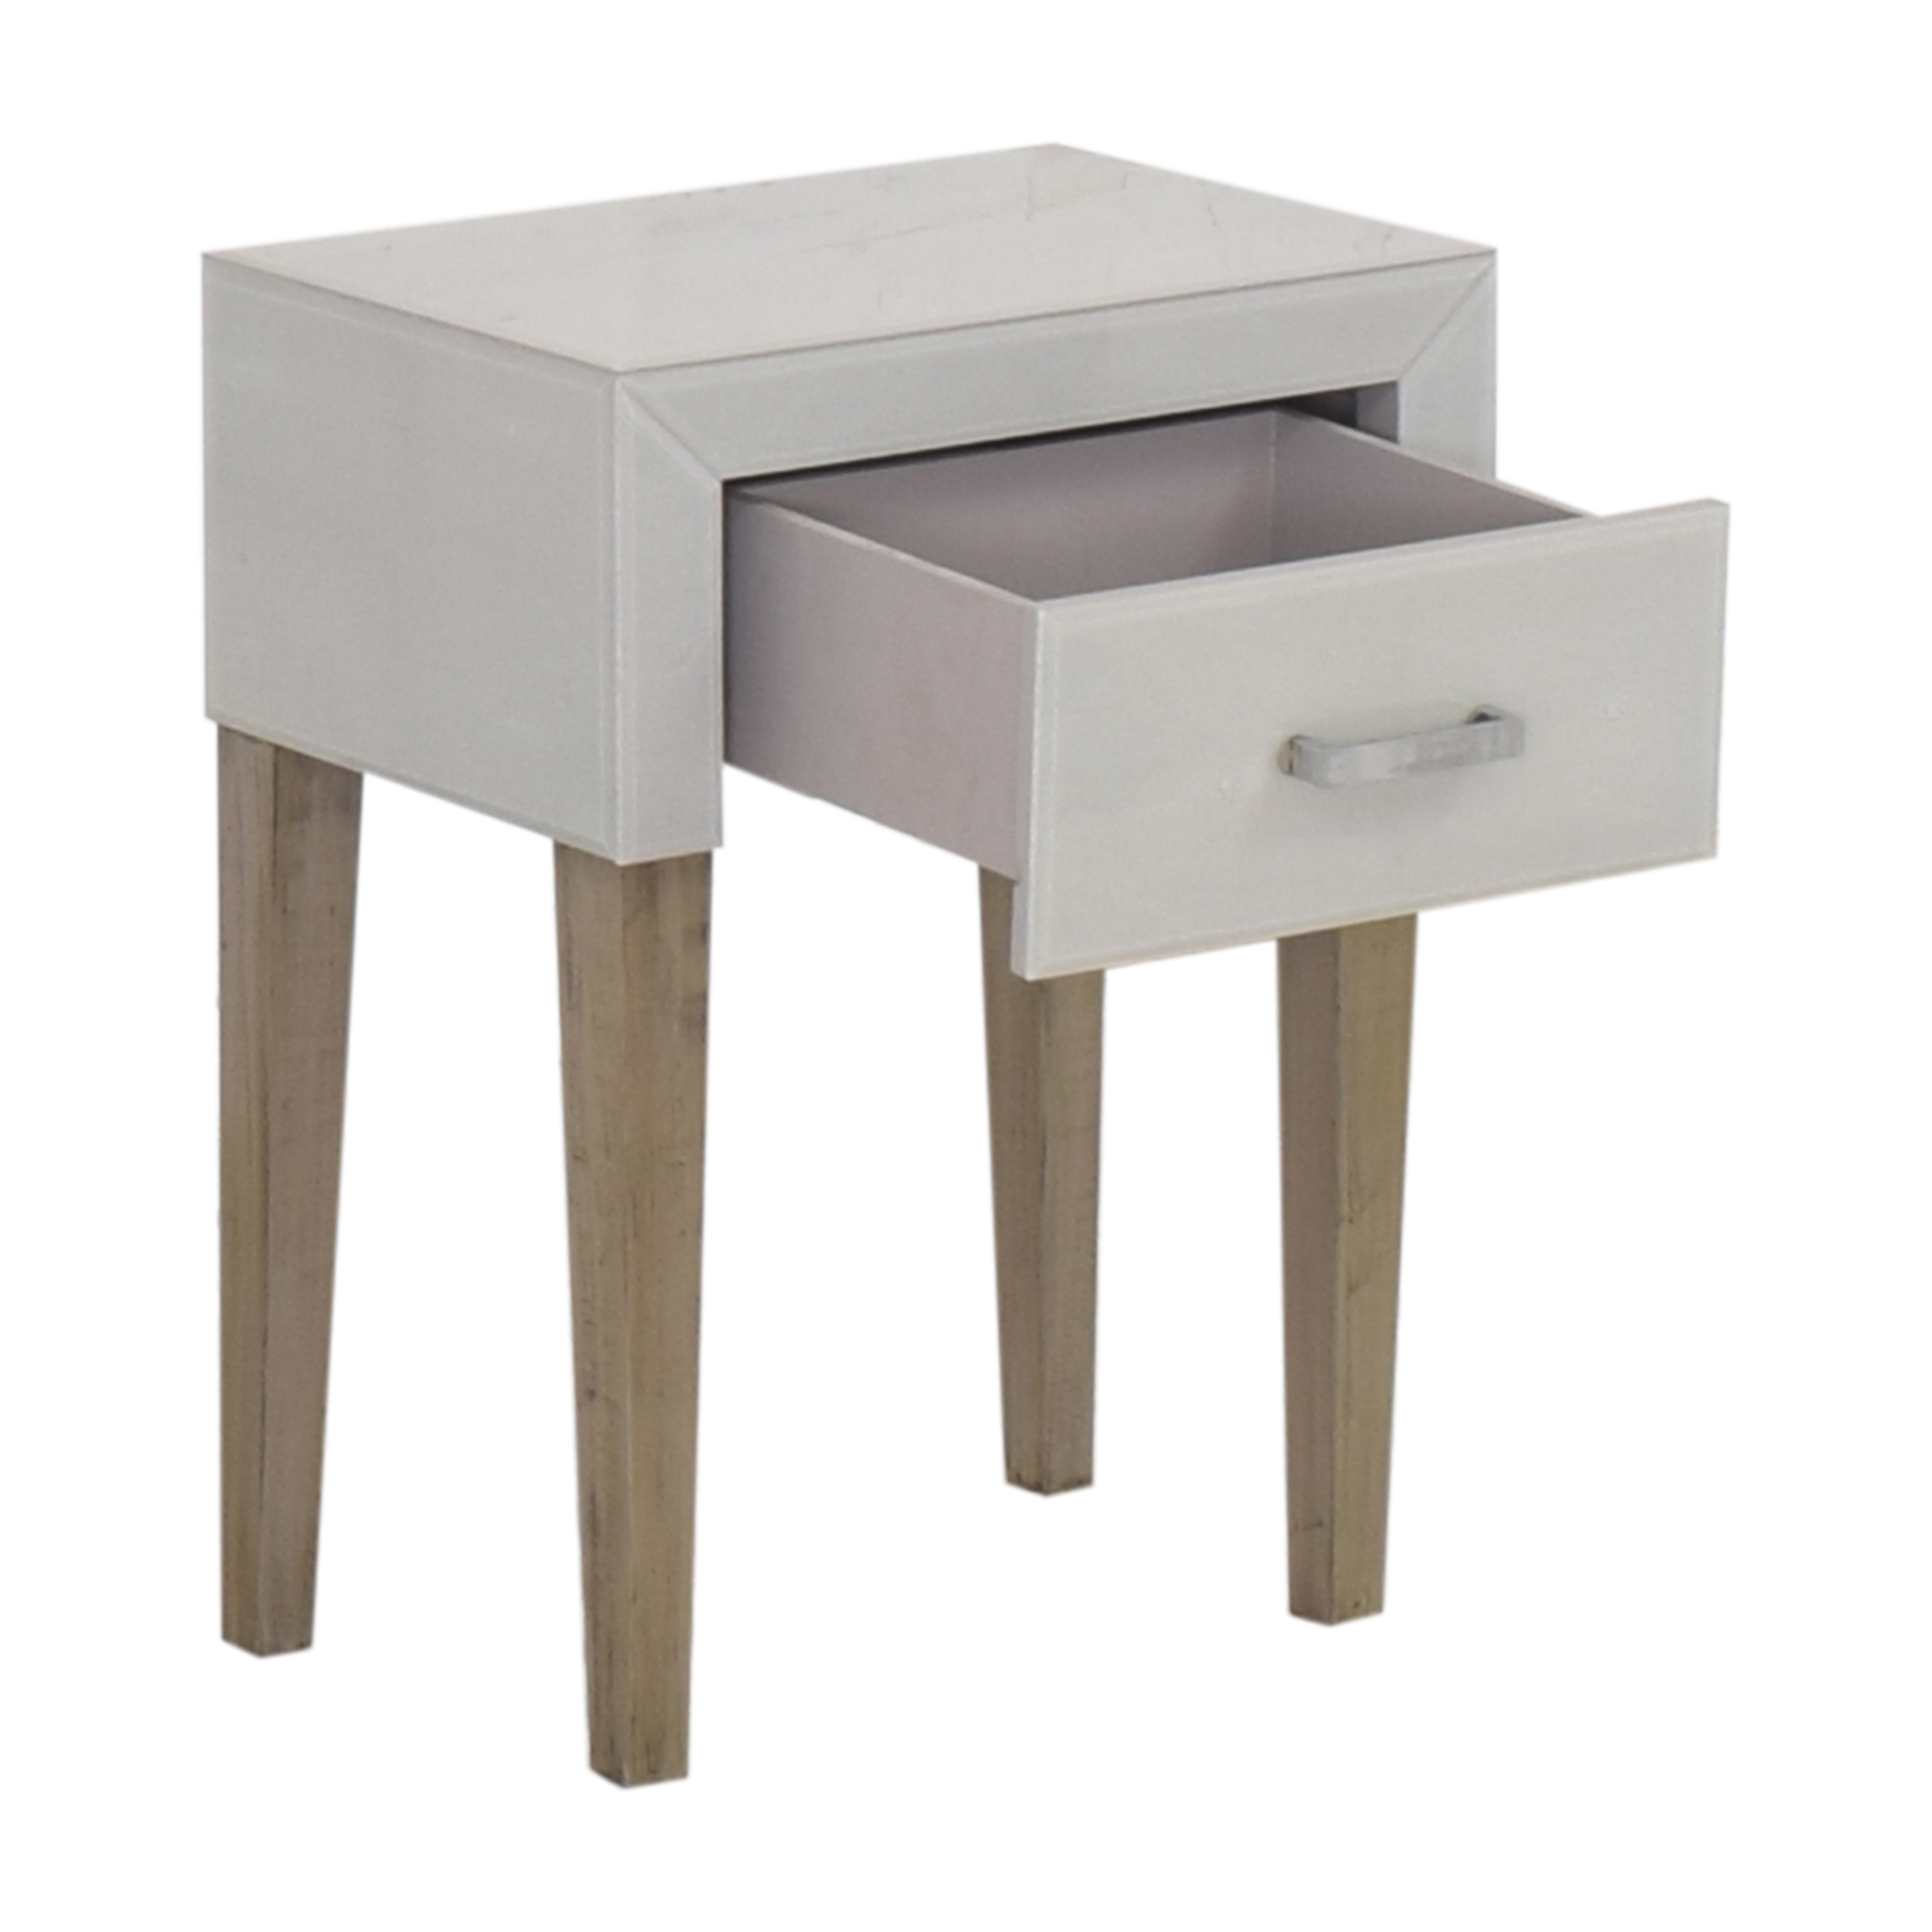 buy Creative Co-Op Creative Co-Op One Drawer End Table online